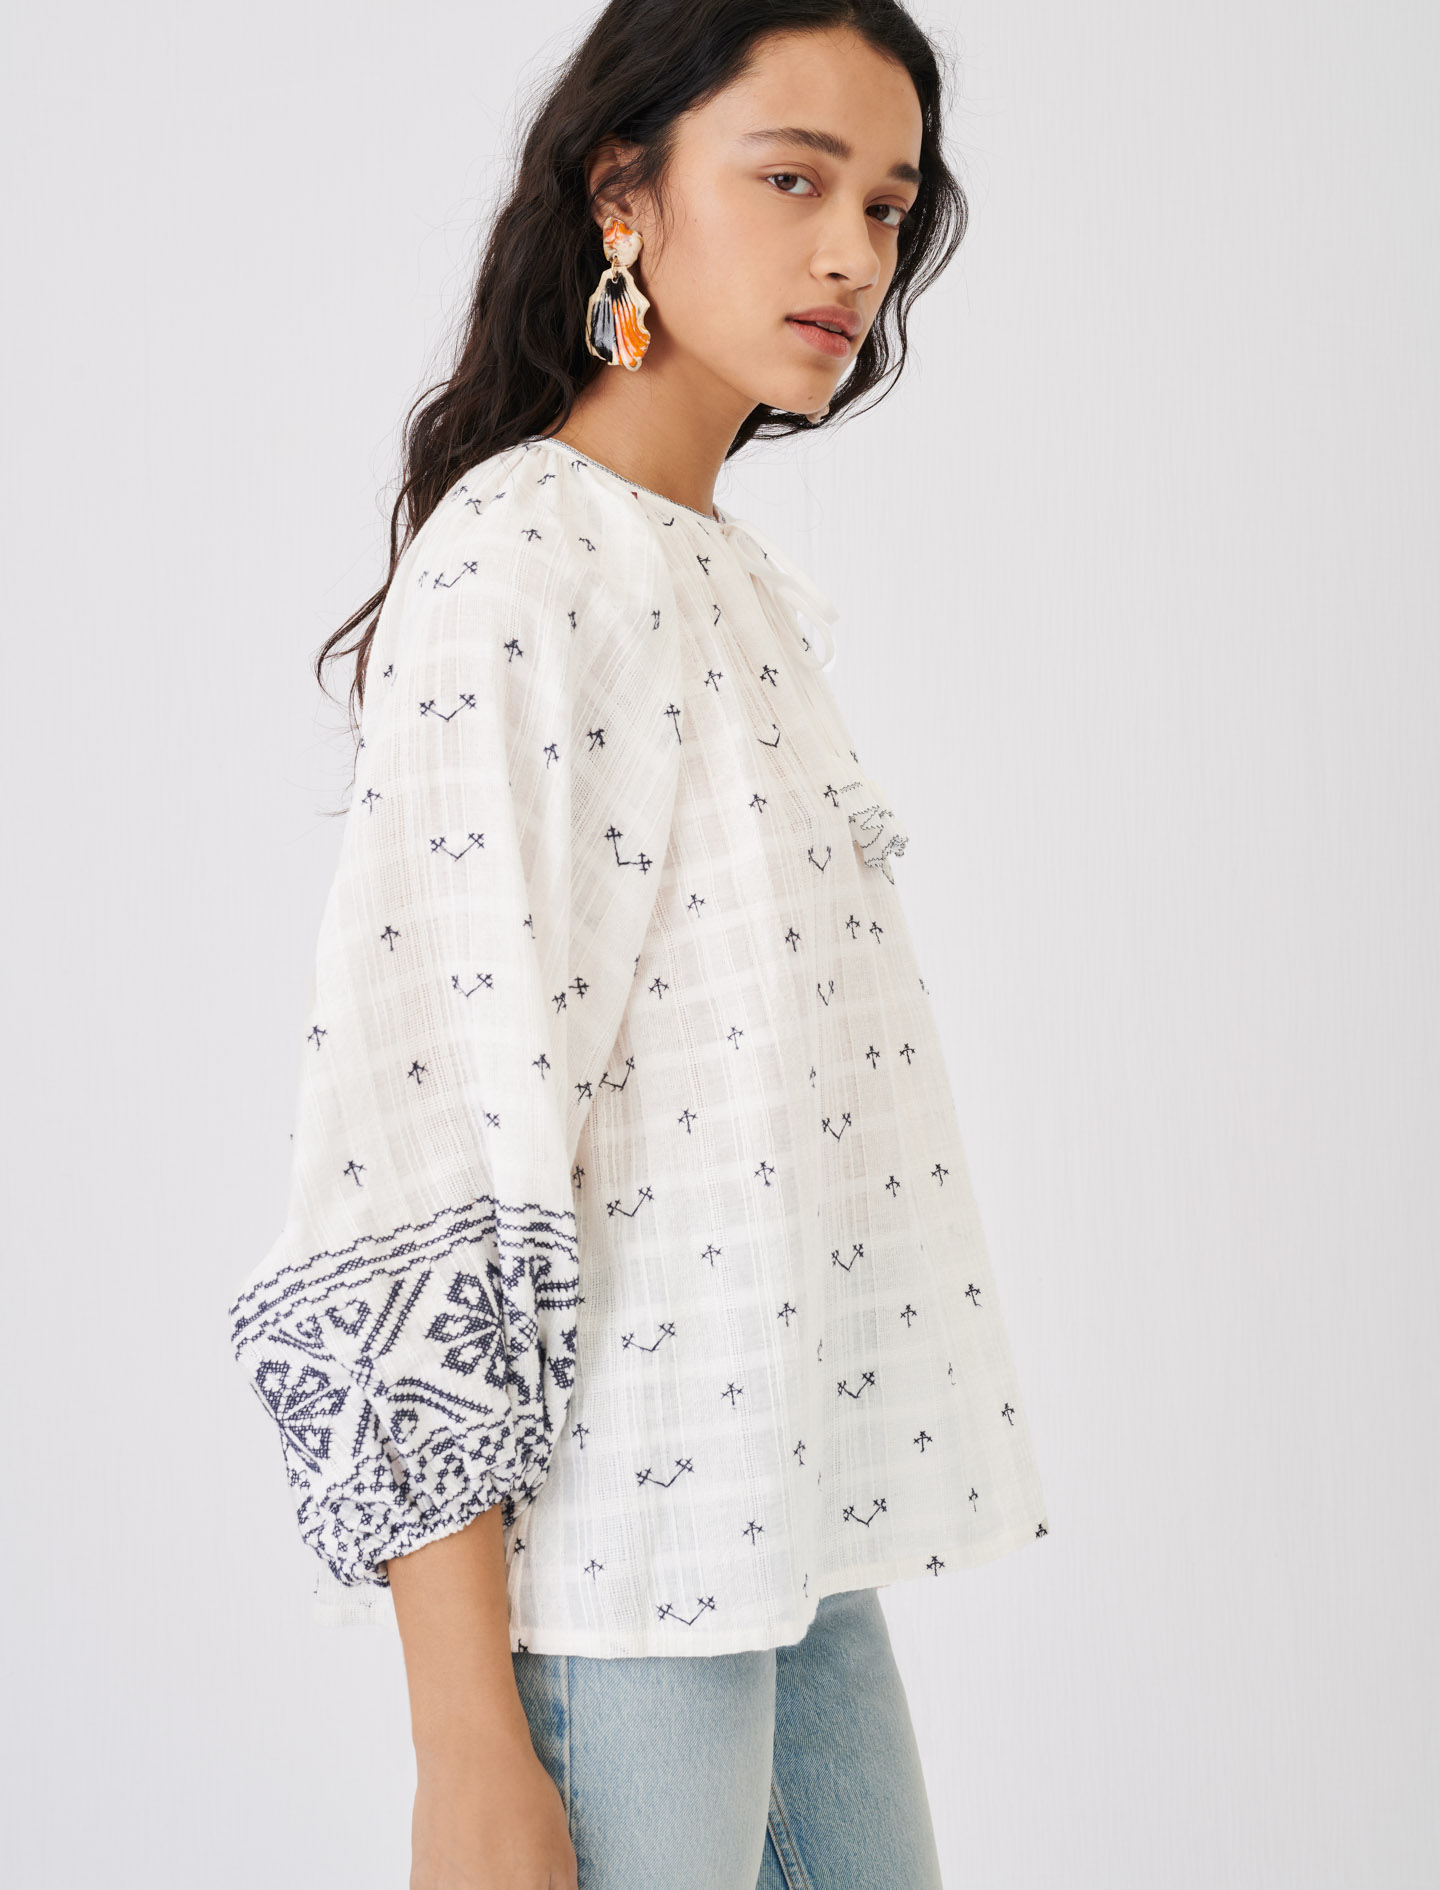 Fully embroidery blouse with low neck